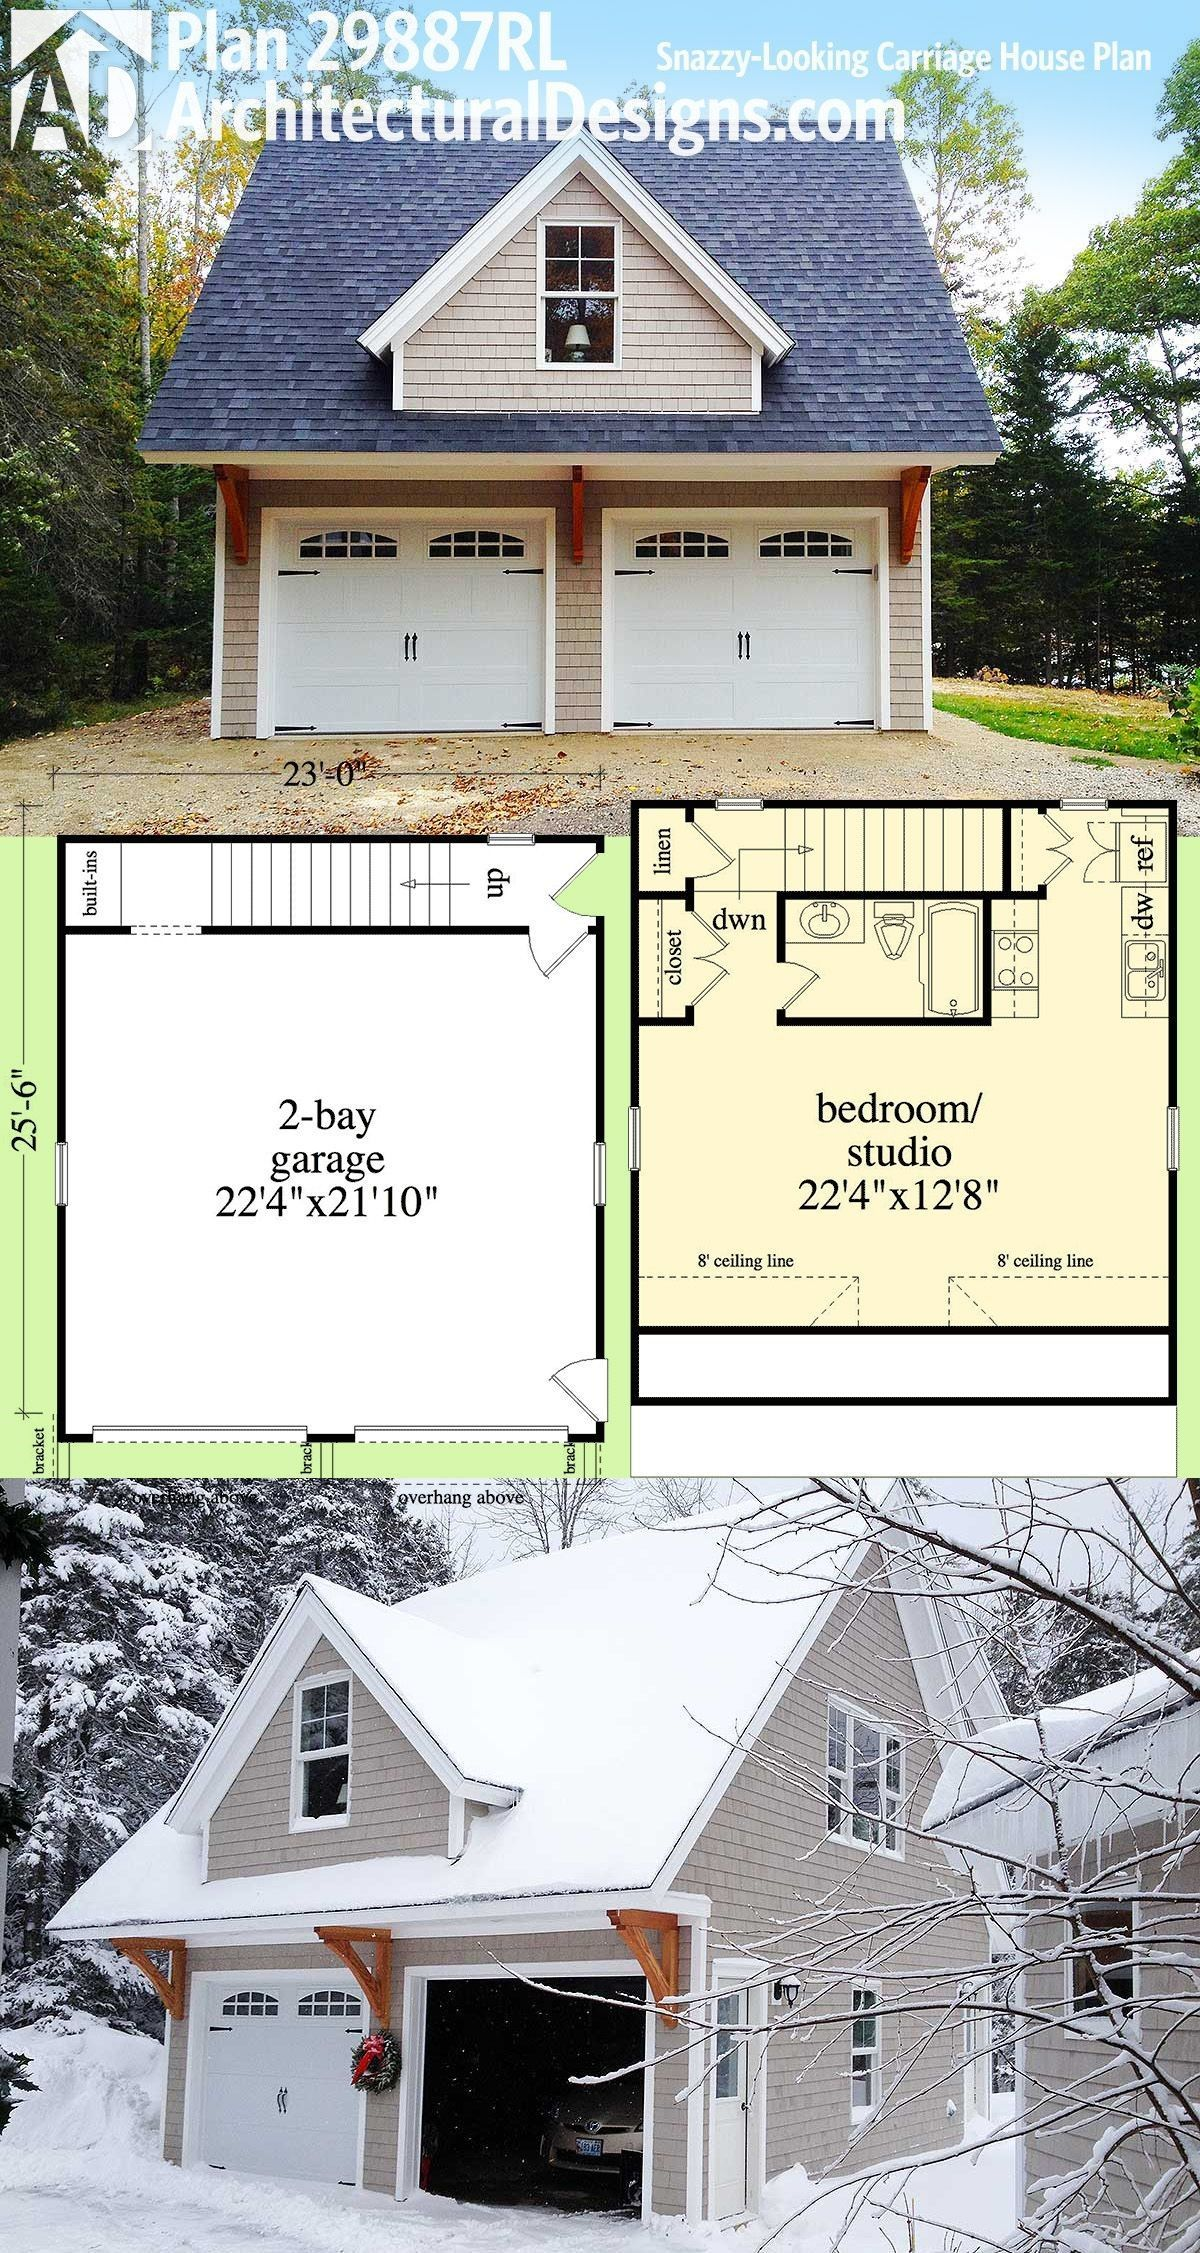 Shed Diy  Architectural Designs Carriage House Plan 29887Rl Can